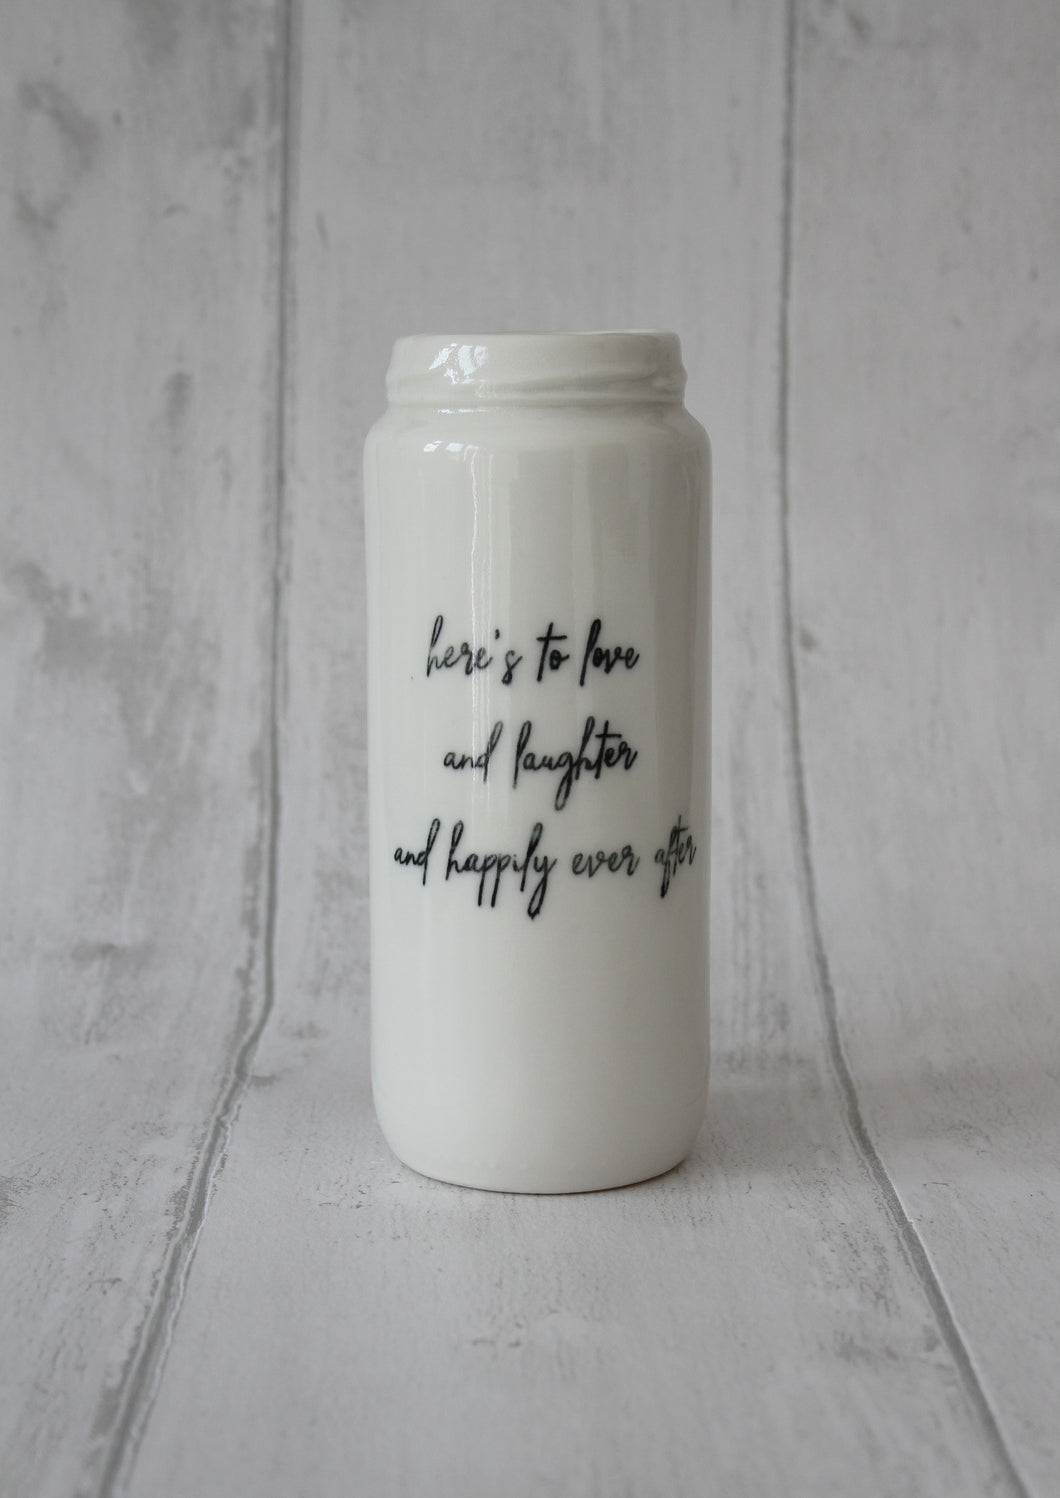 Tall Porcelain Jar - Here's to love and laughter and happily ever after